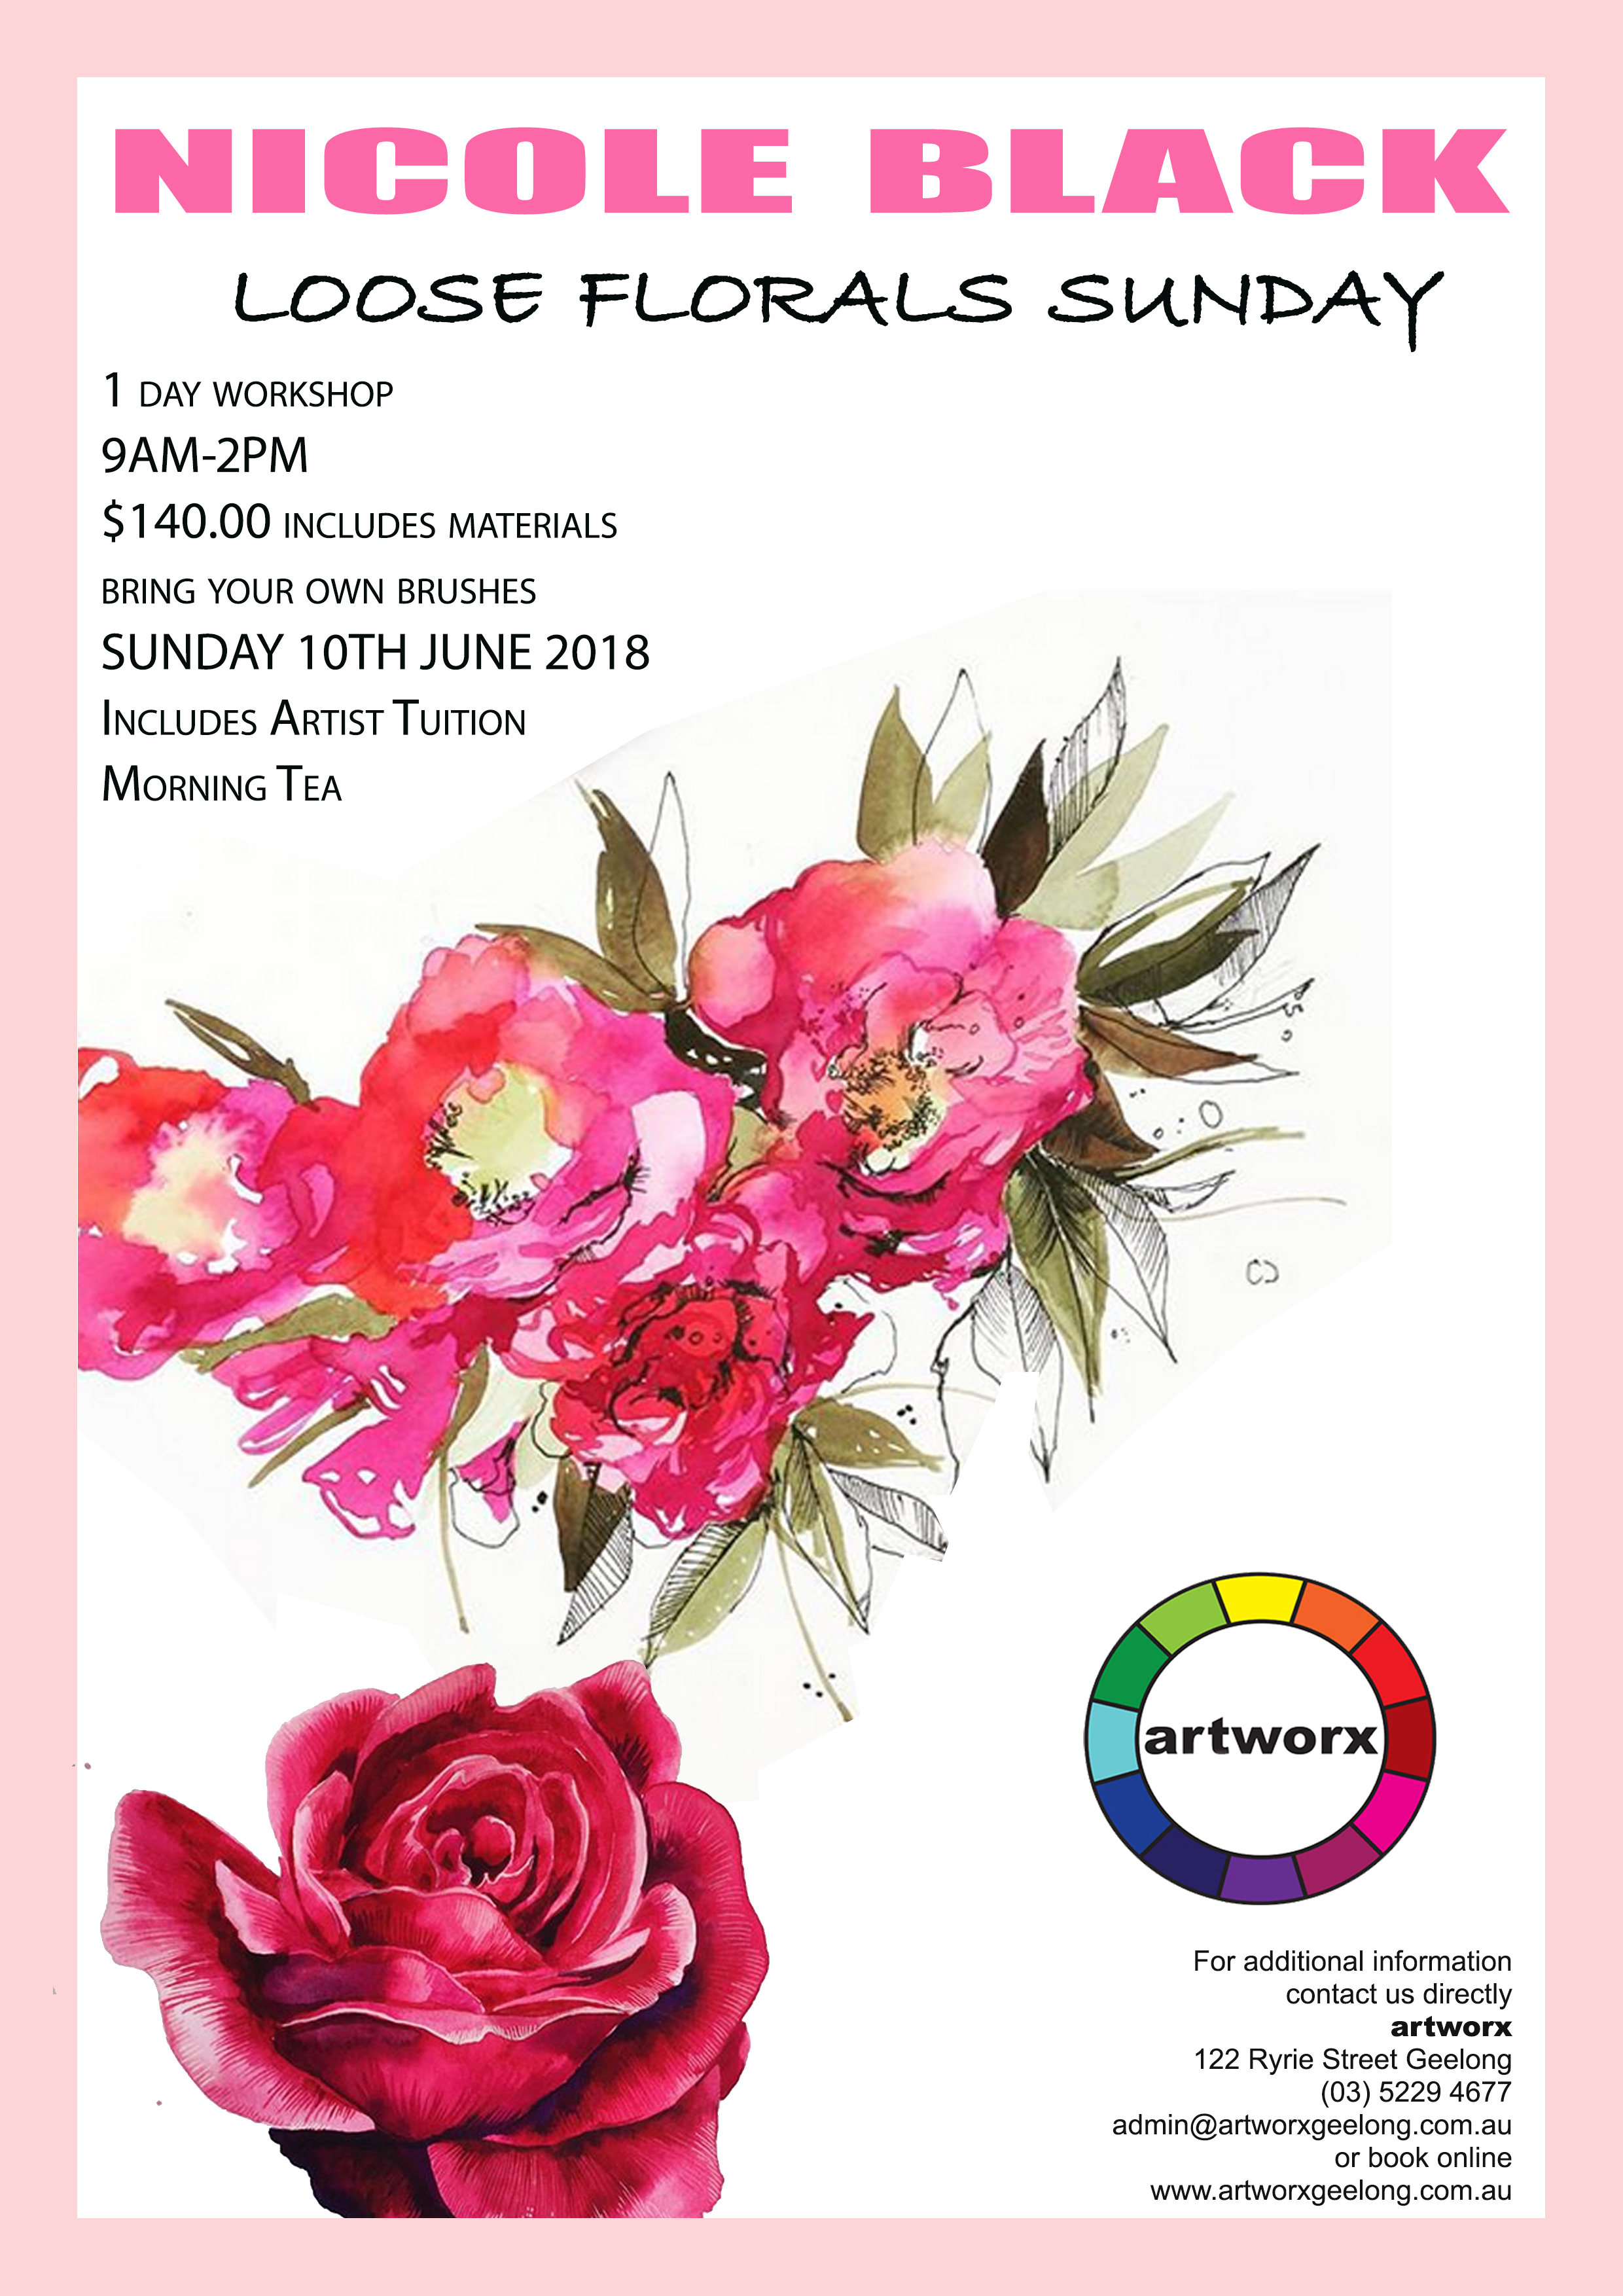 Loose Florals Sunday 10th June Nicole Black